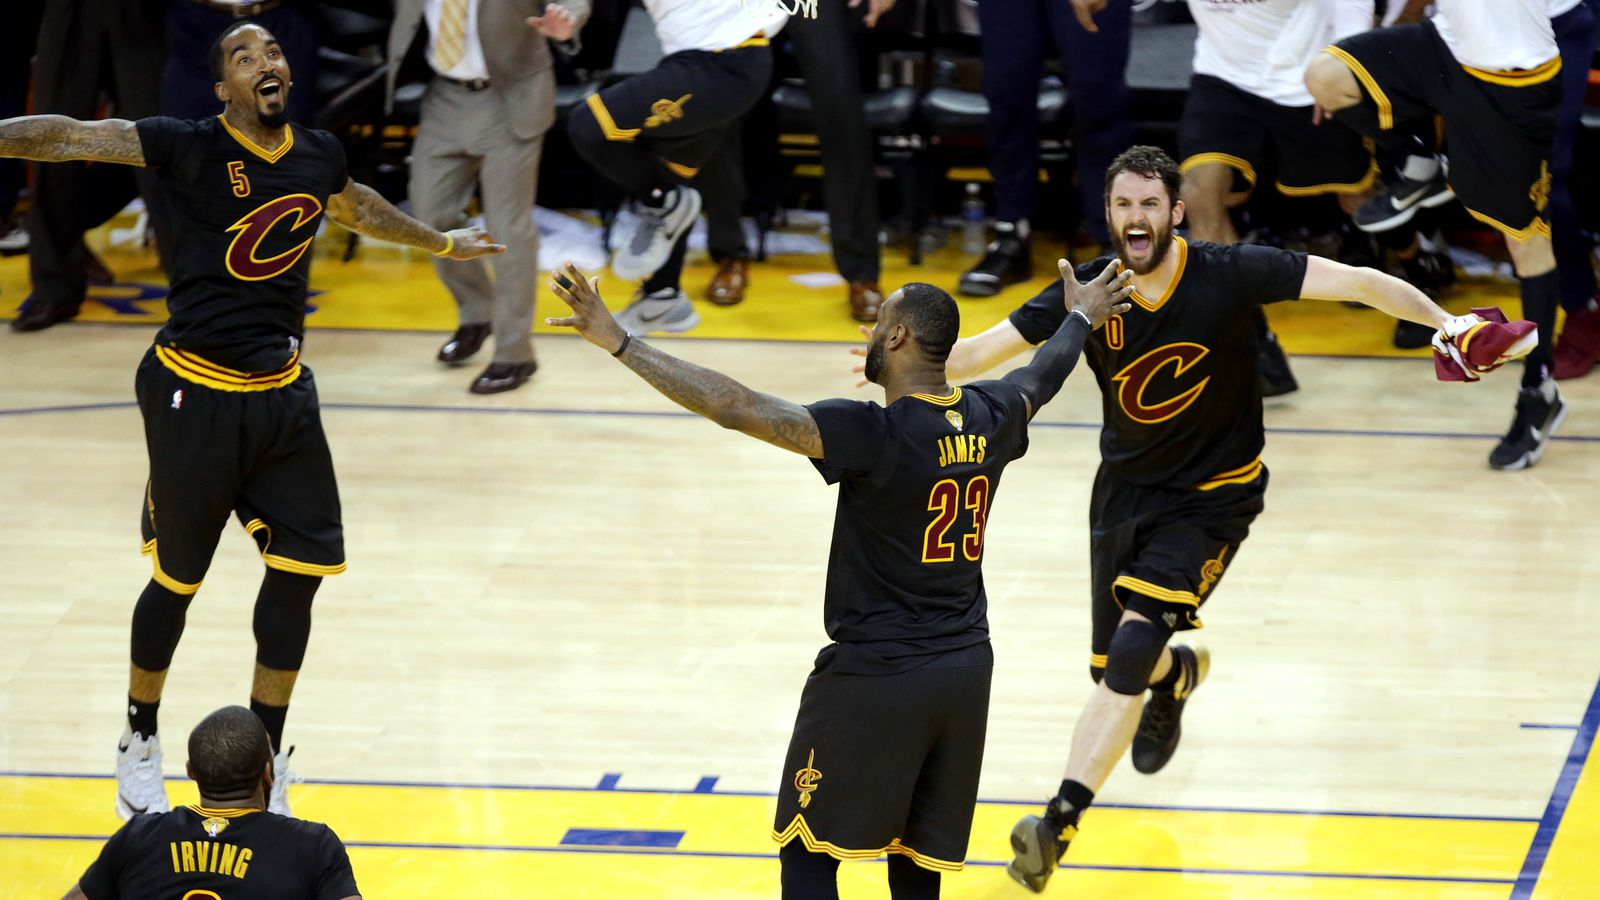 sale retailer 4dd97 c3447 NBA Finals 2016: The Warriors had an answer for everything ...